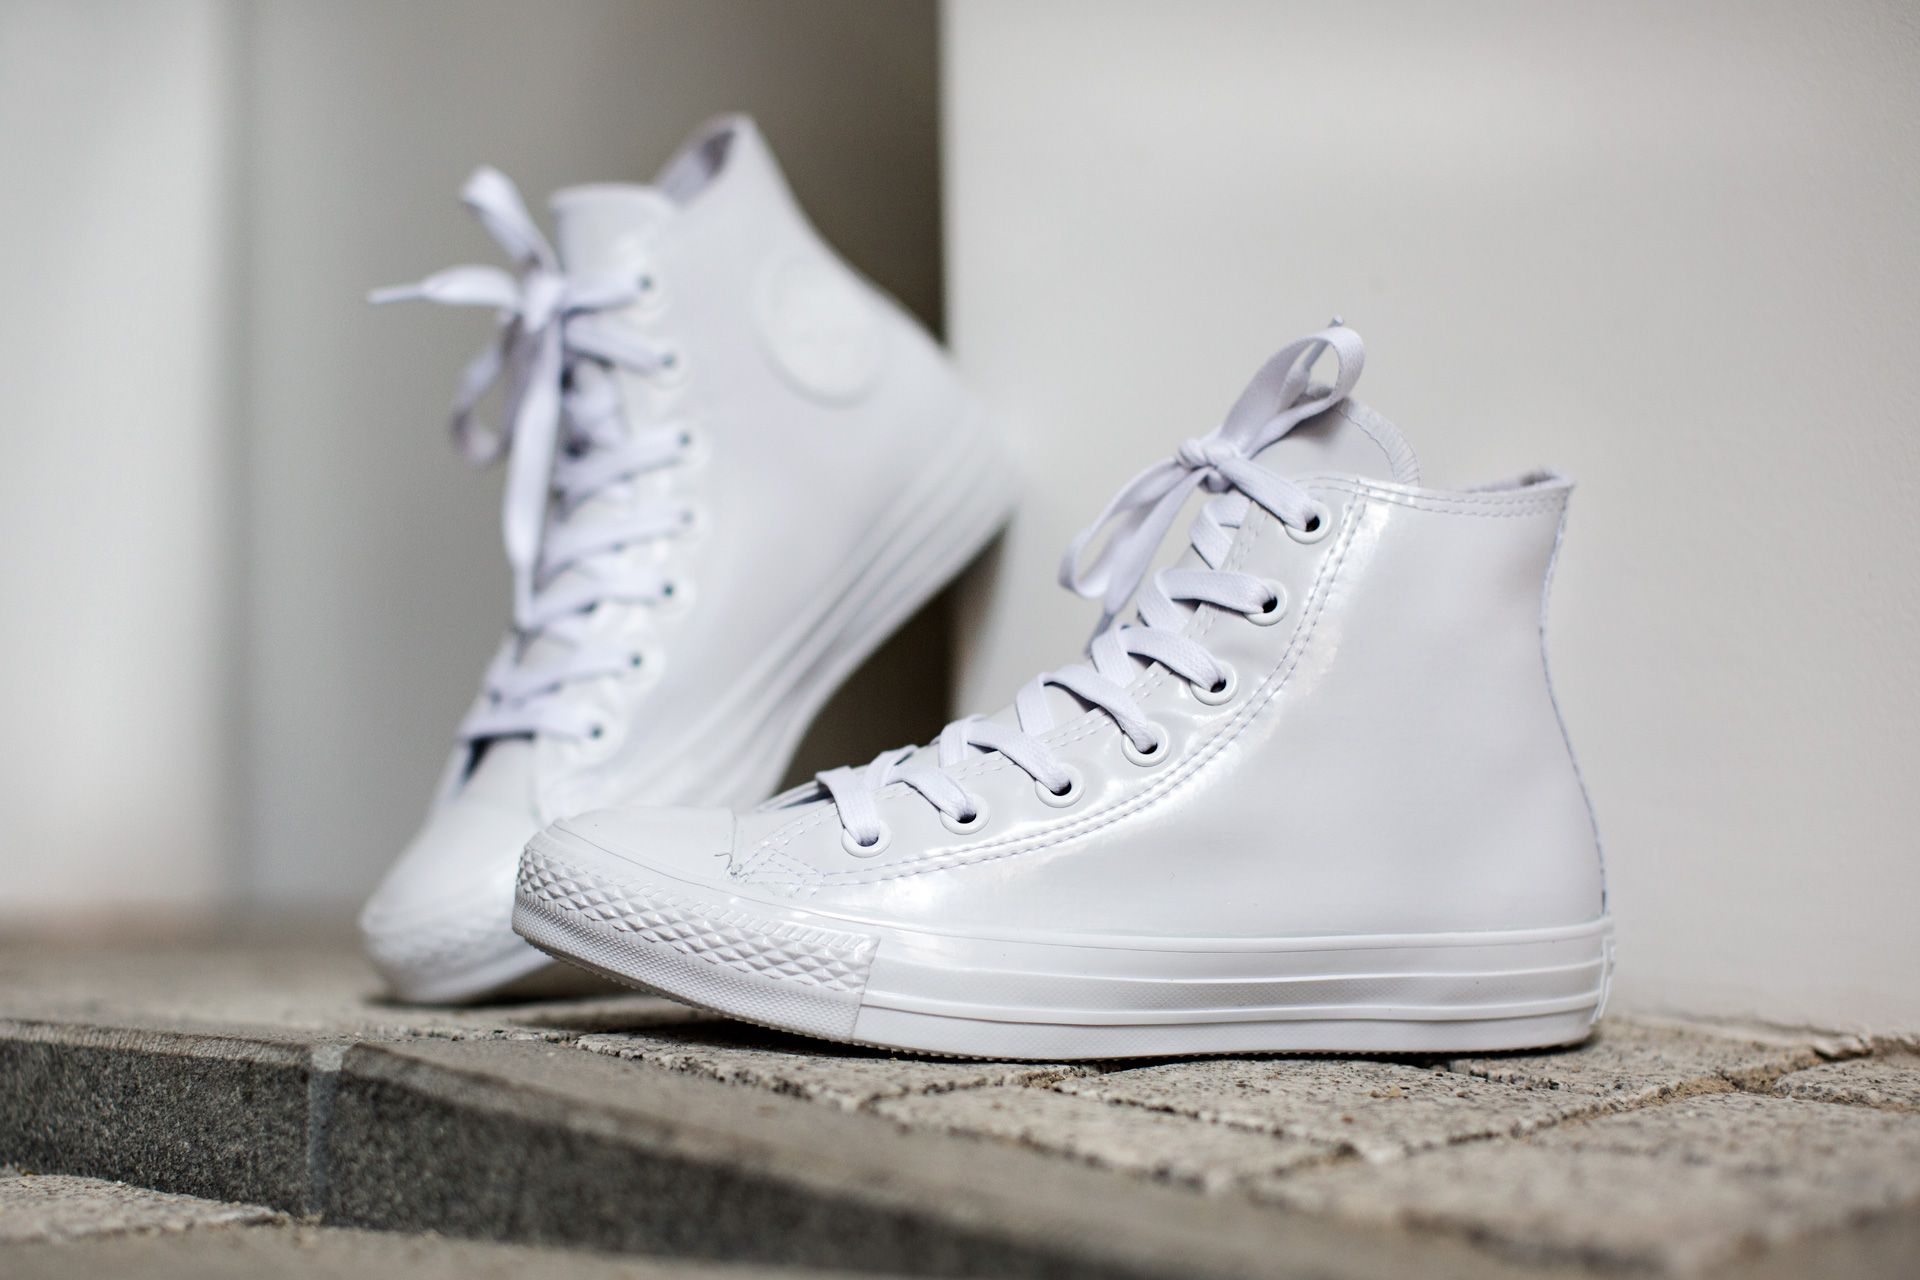 CONVERSE CHUCK TAYLOR ALL STAR RUBBER CHUCK HI WHITE